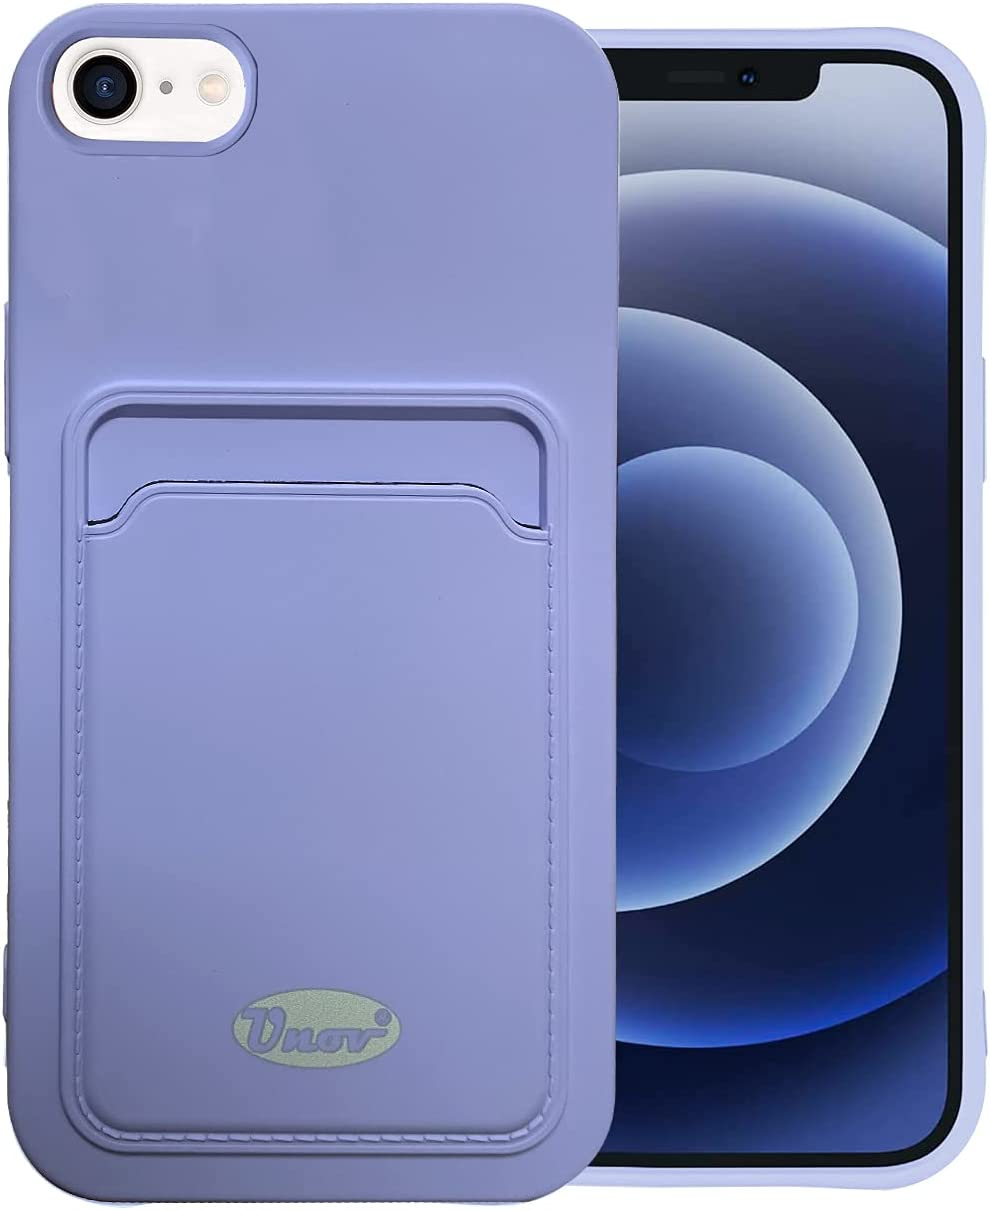 Unov Case Compatible with iPhone SE (2020) iPhone 8 iPhone 7 iPhone 6s iPhone 6 Soft Silicone Slim Protective Case with Card Holder Sleeve Wallet Card Pocket Cover Case (Mouve Purple)